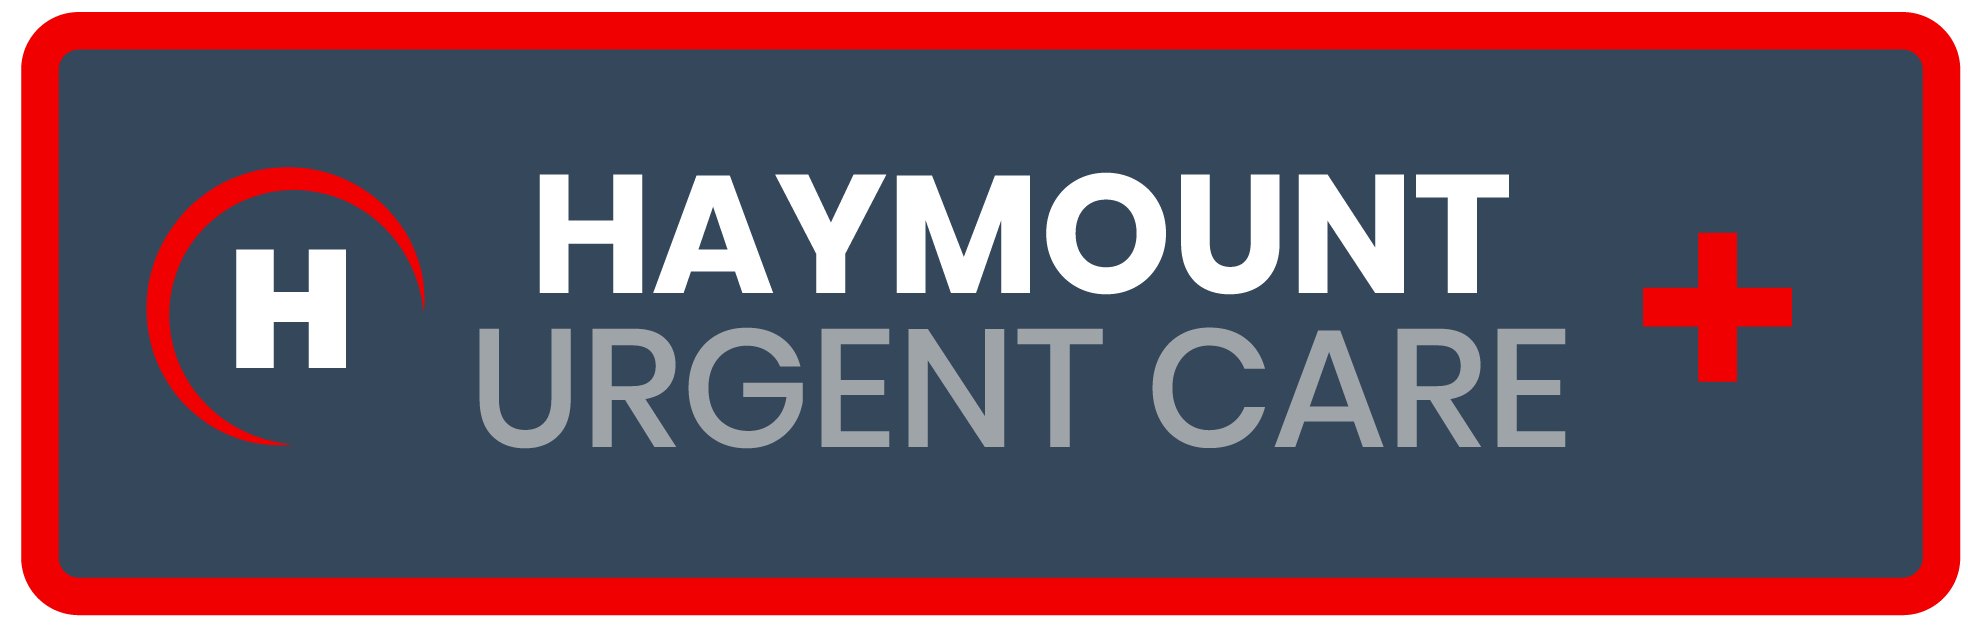 Haymount Urgent Care